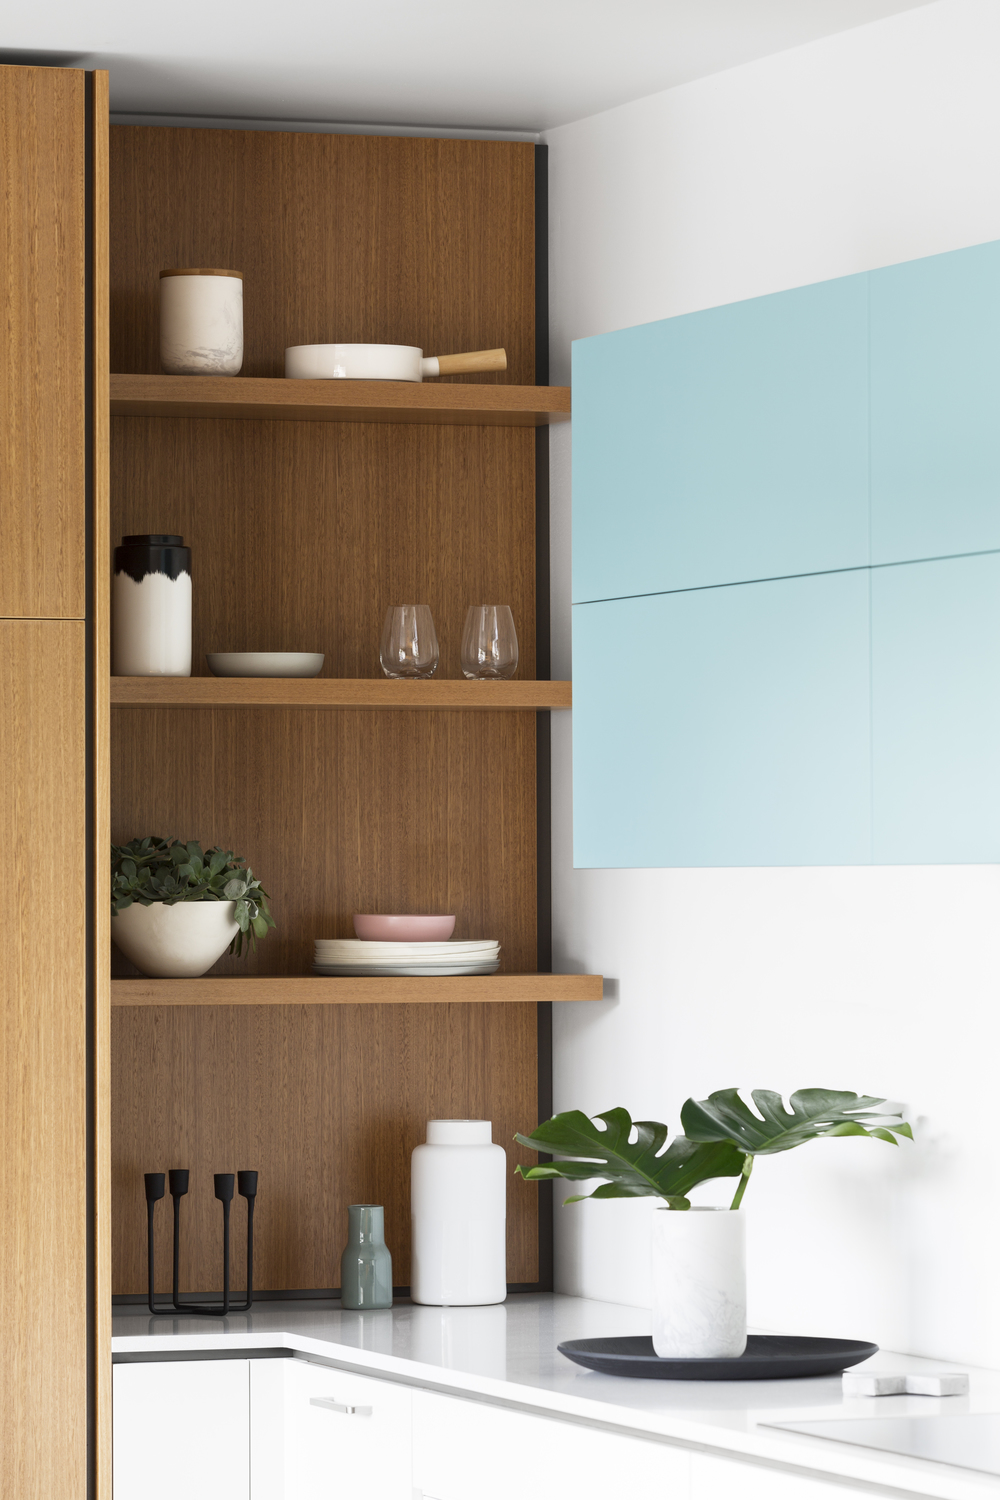 Cantilever Interiors Kitchen 2, featuring blackbutt shelving | cantileverinteriors.com